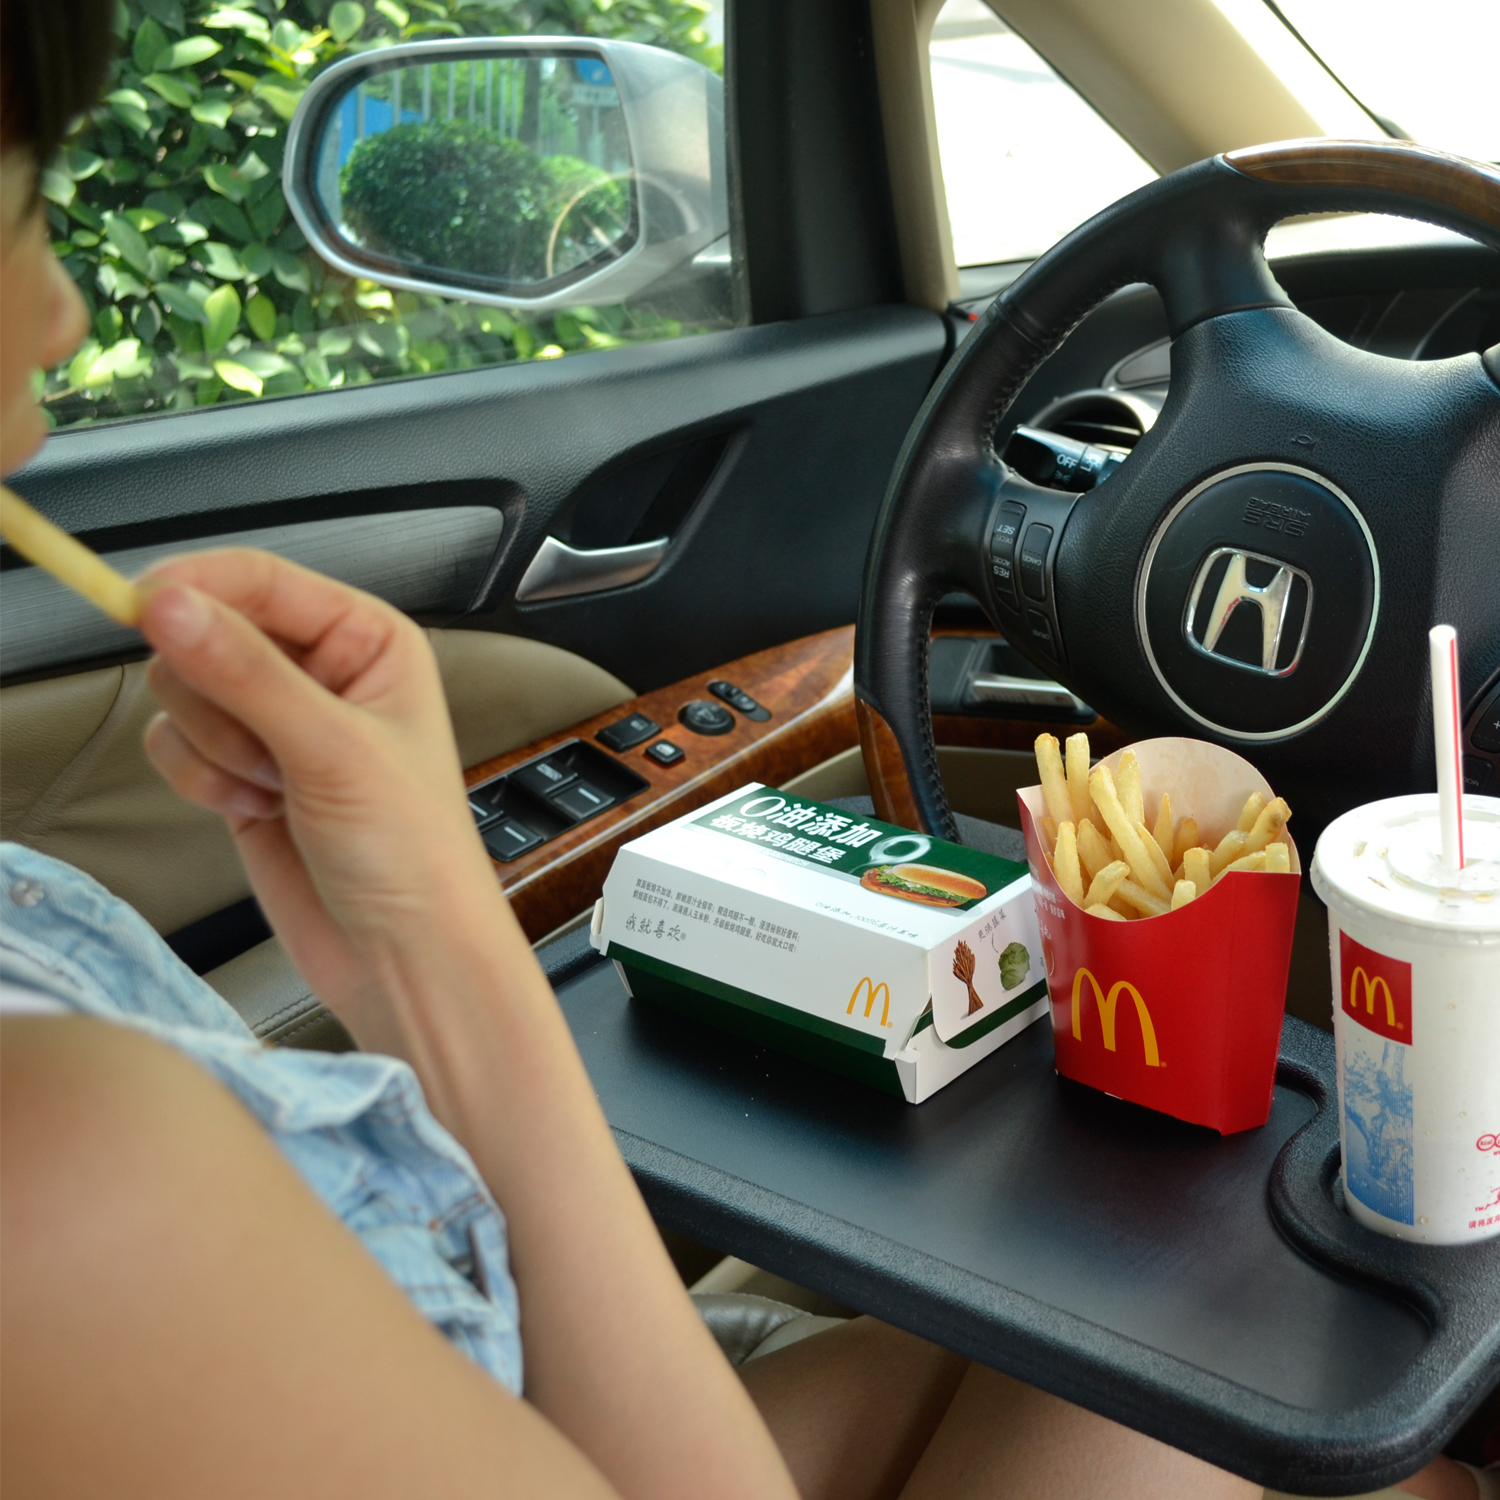 TFY Auto Desk Steering Wheel Attachment For Note Taking Laptop Or Tablet Rest Meal